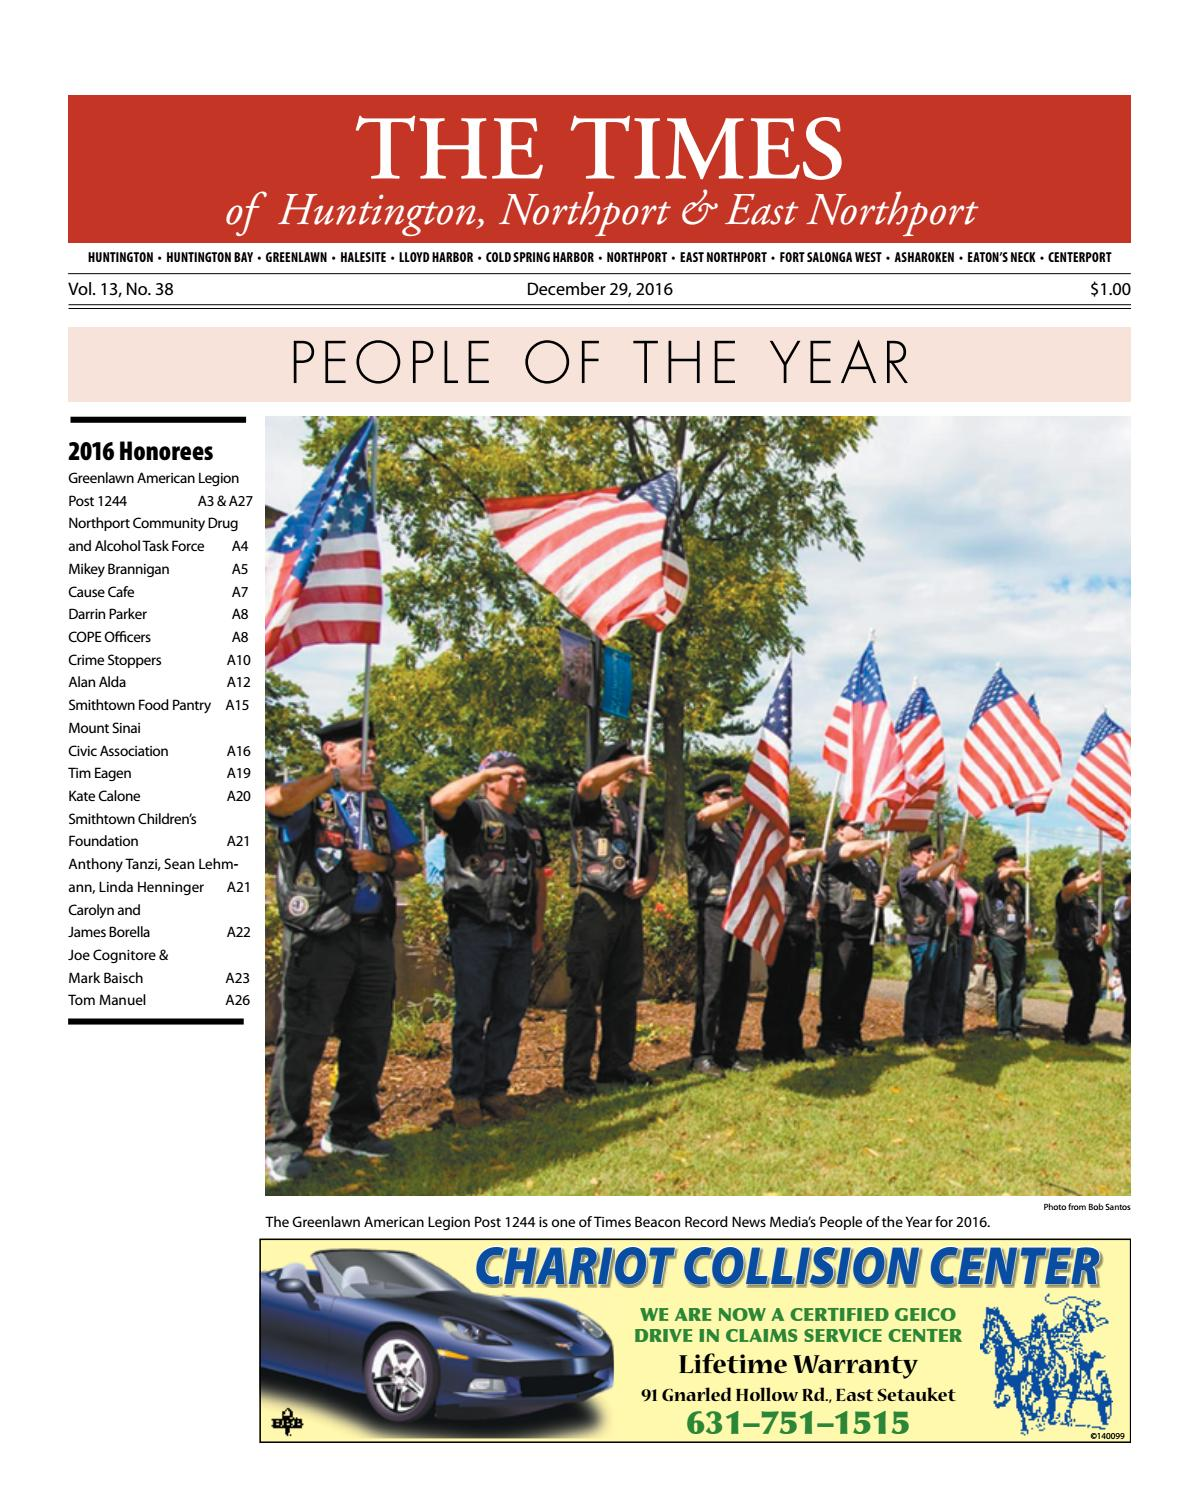 The Times of Huntington-Northport - December 29, 2016 by TBR